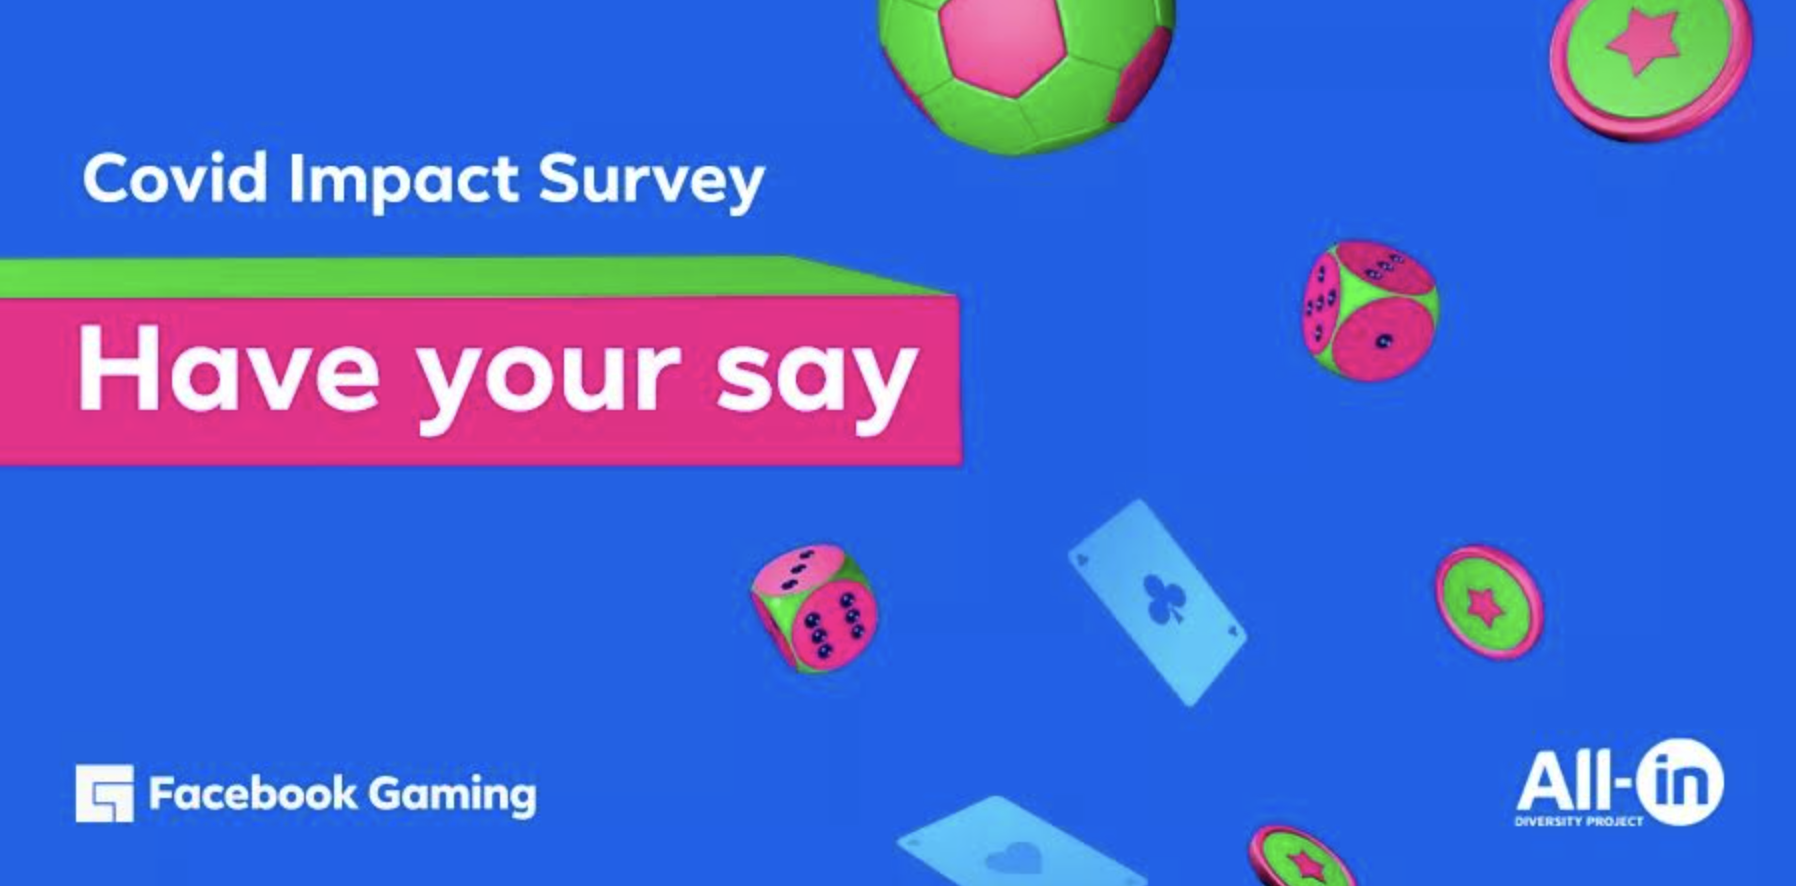 All-in Diversity Project launches the industry's first COVID impact survey